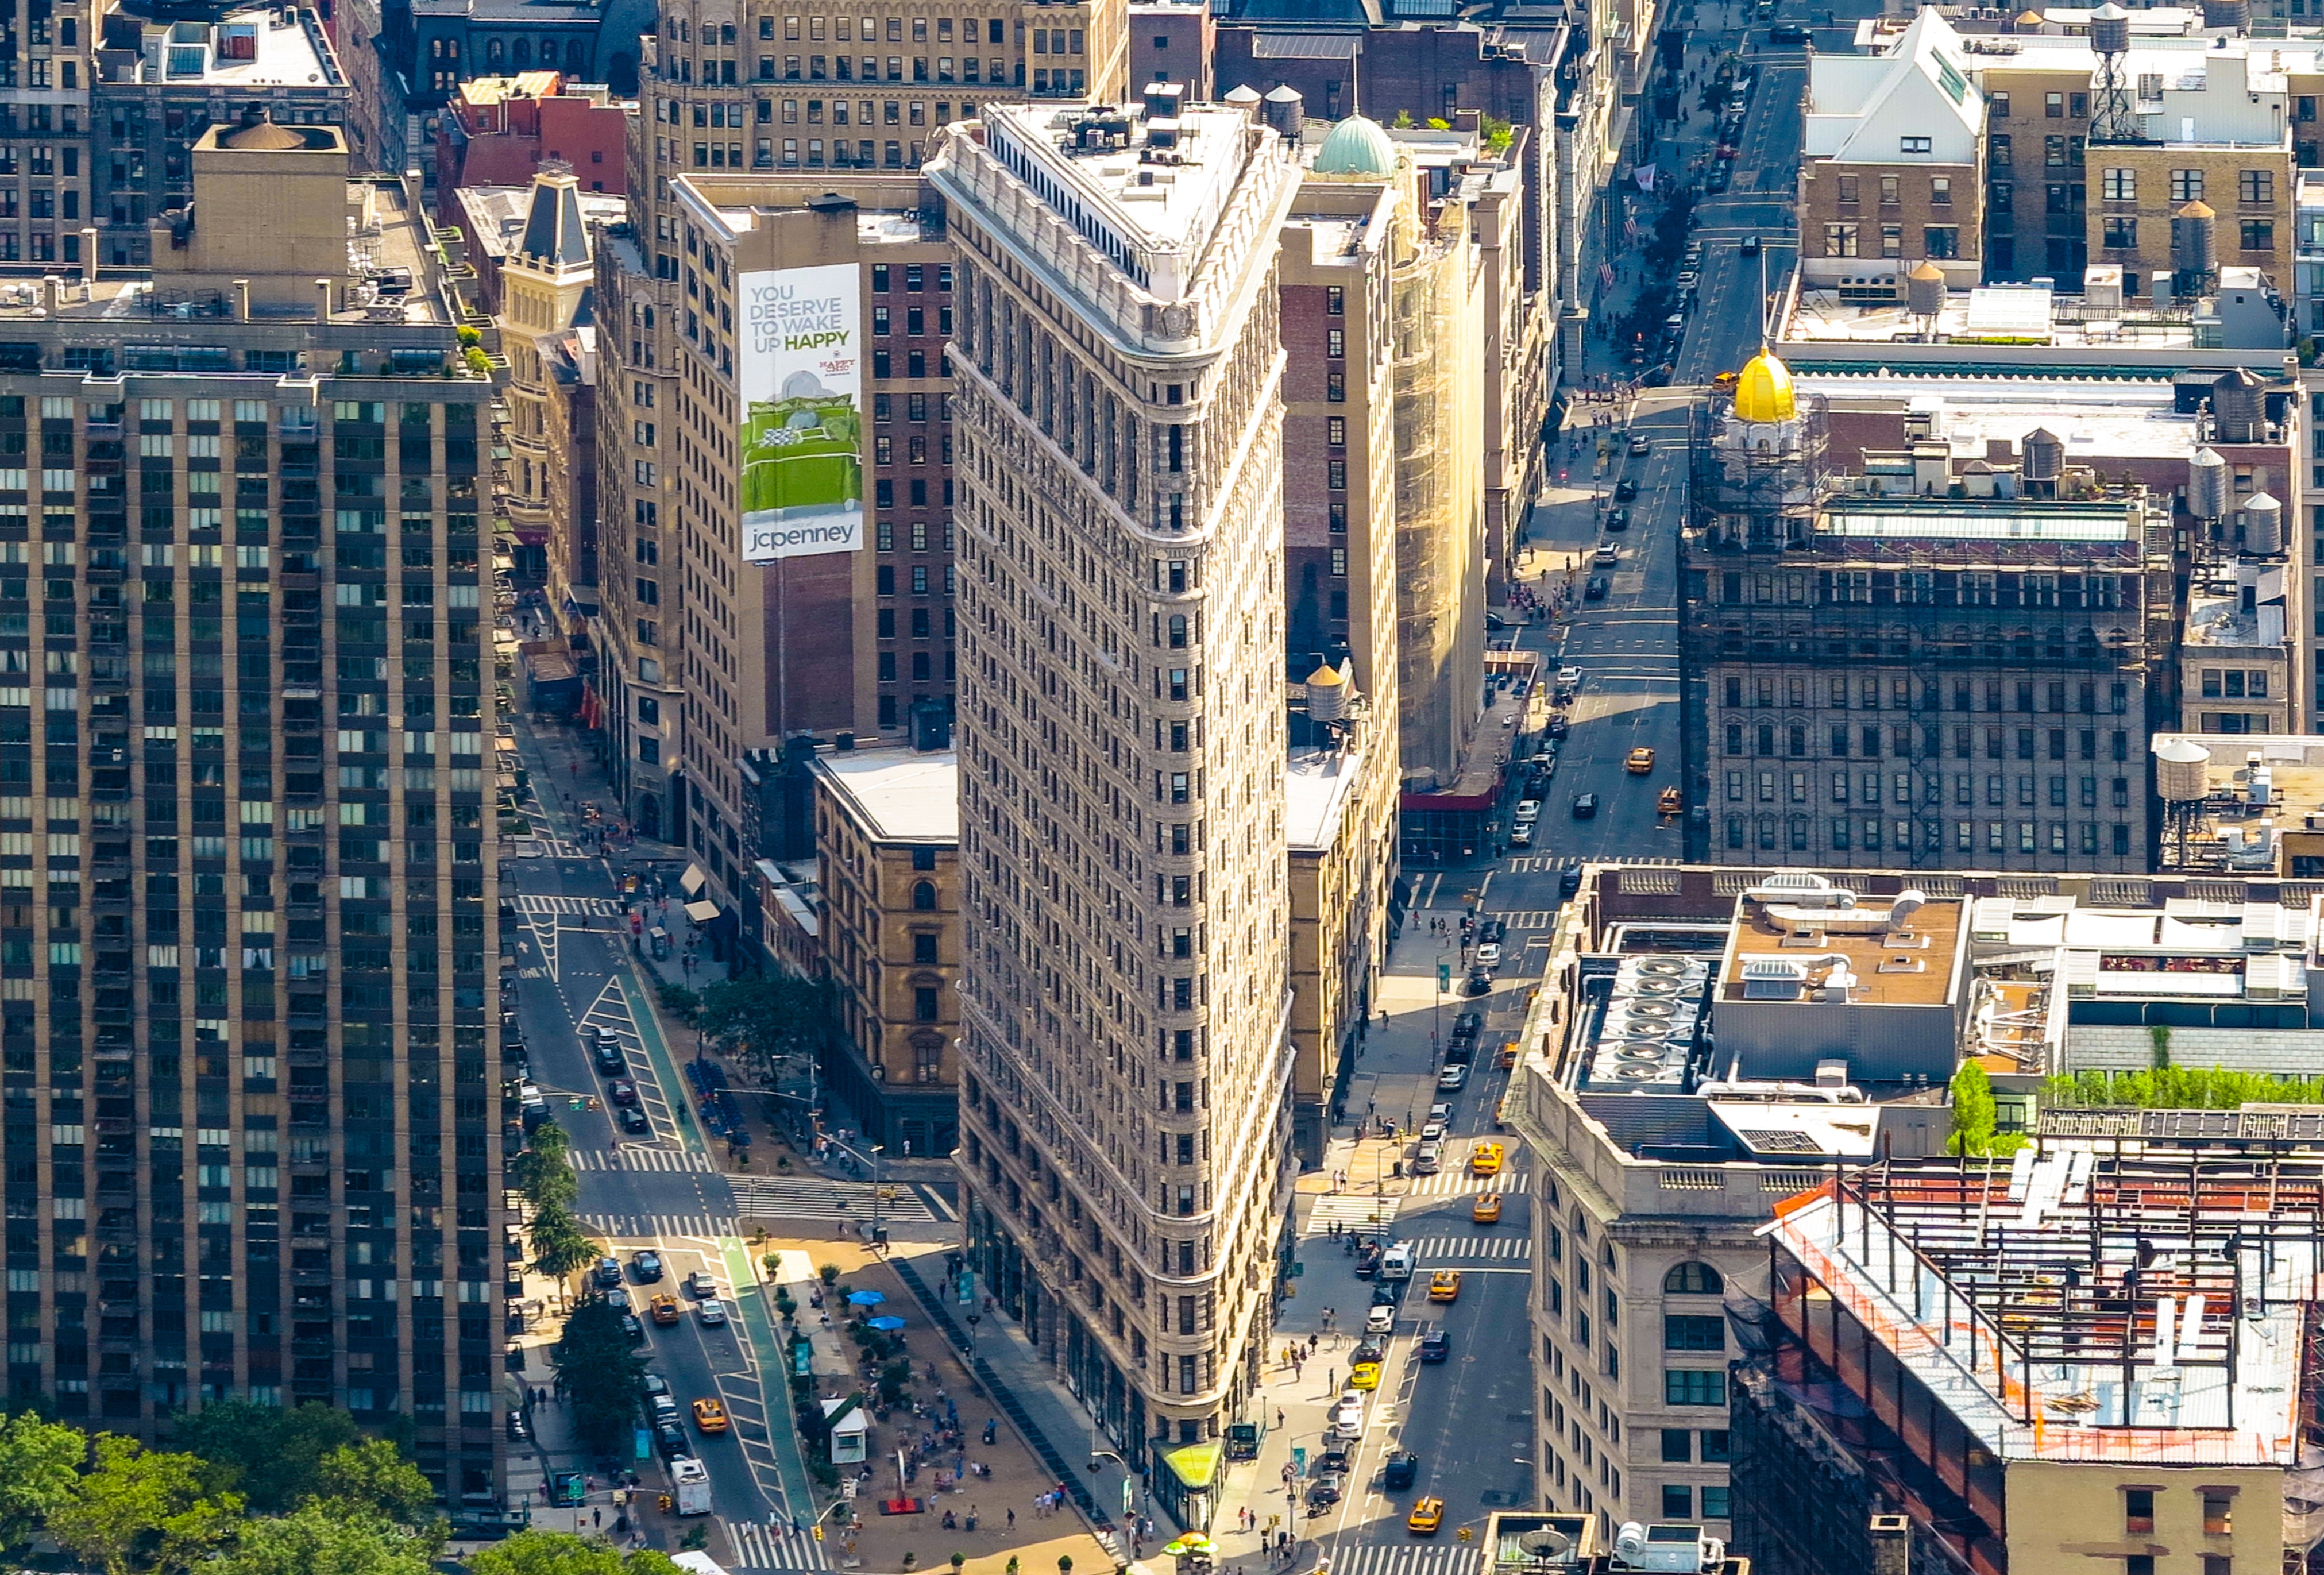 Aerial Photo Of Buildings Free Stock Photo